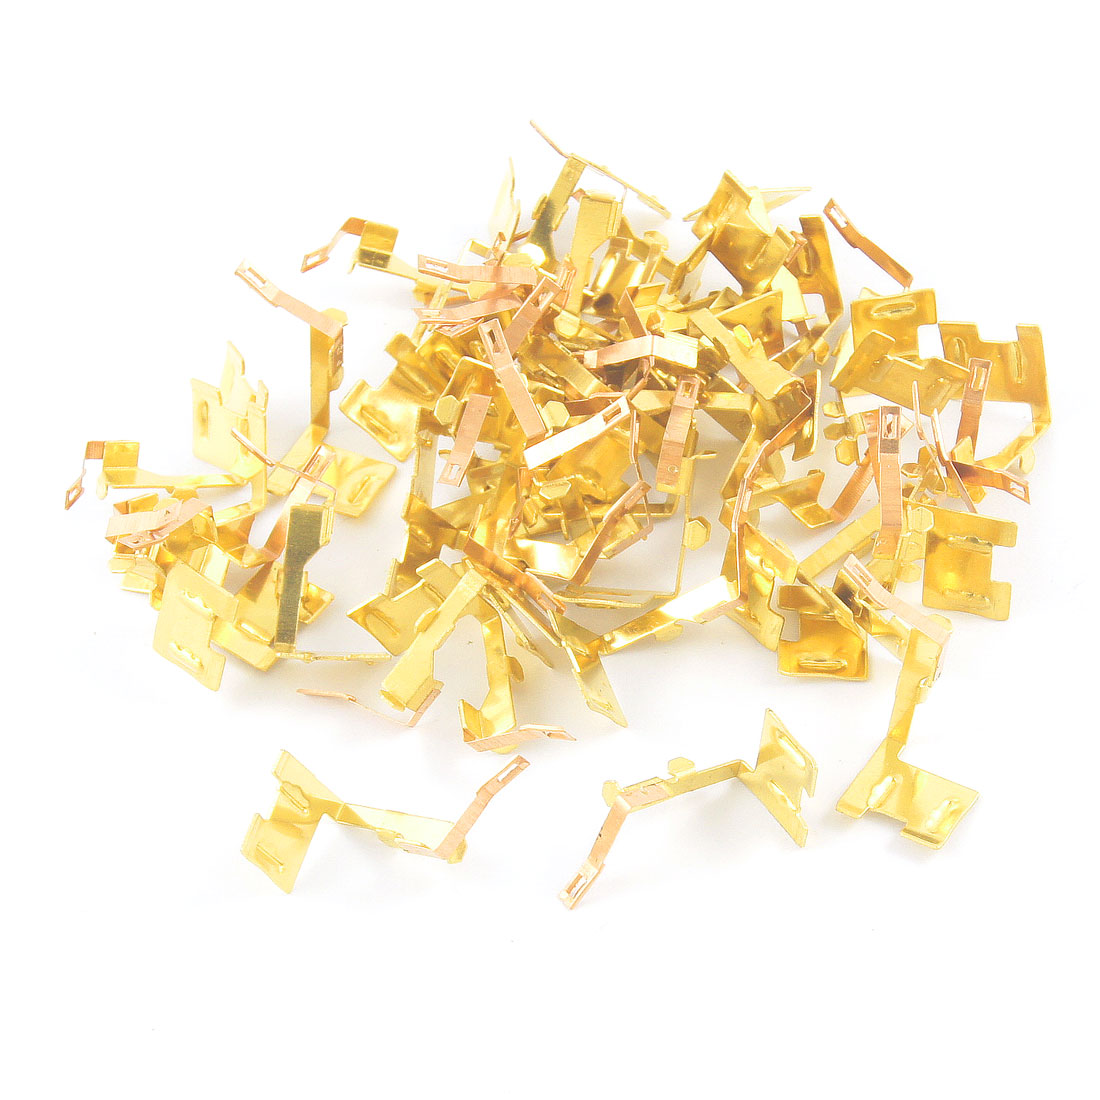 50 Pcs F500-0.11A Gold Tone Carbon Brush Holder for F500 Motor Cizzf